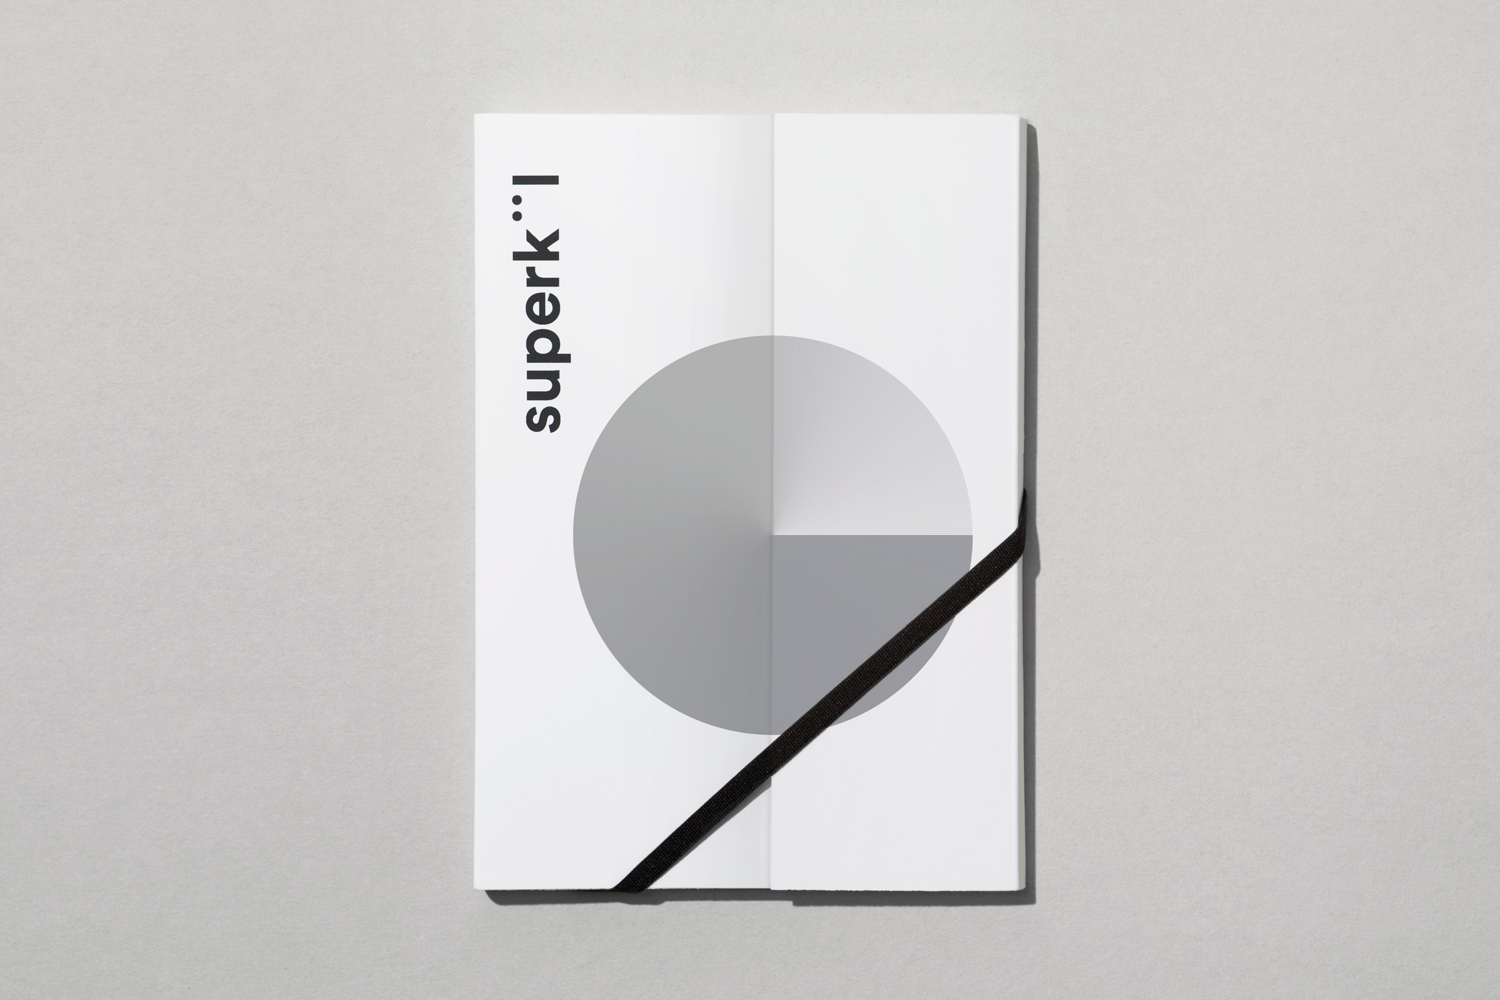 Brand identity and notebook by Toronto-based graphic design studio Blok for Canadian architecture firm Superkül